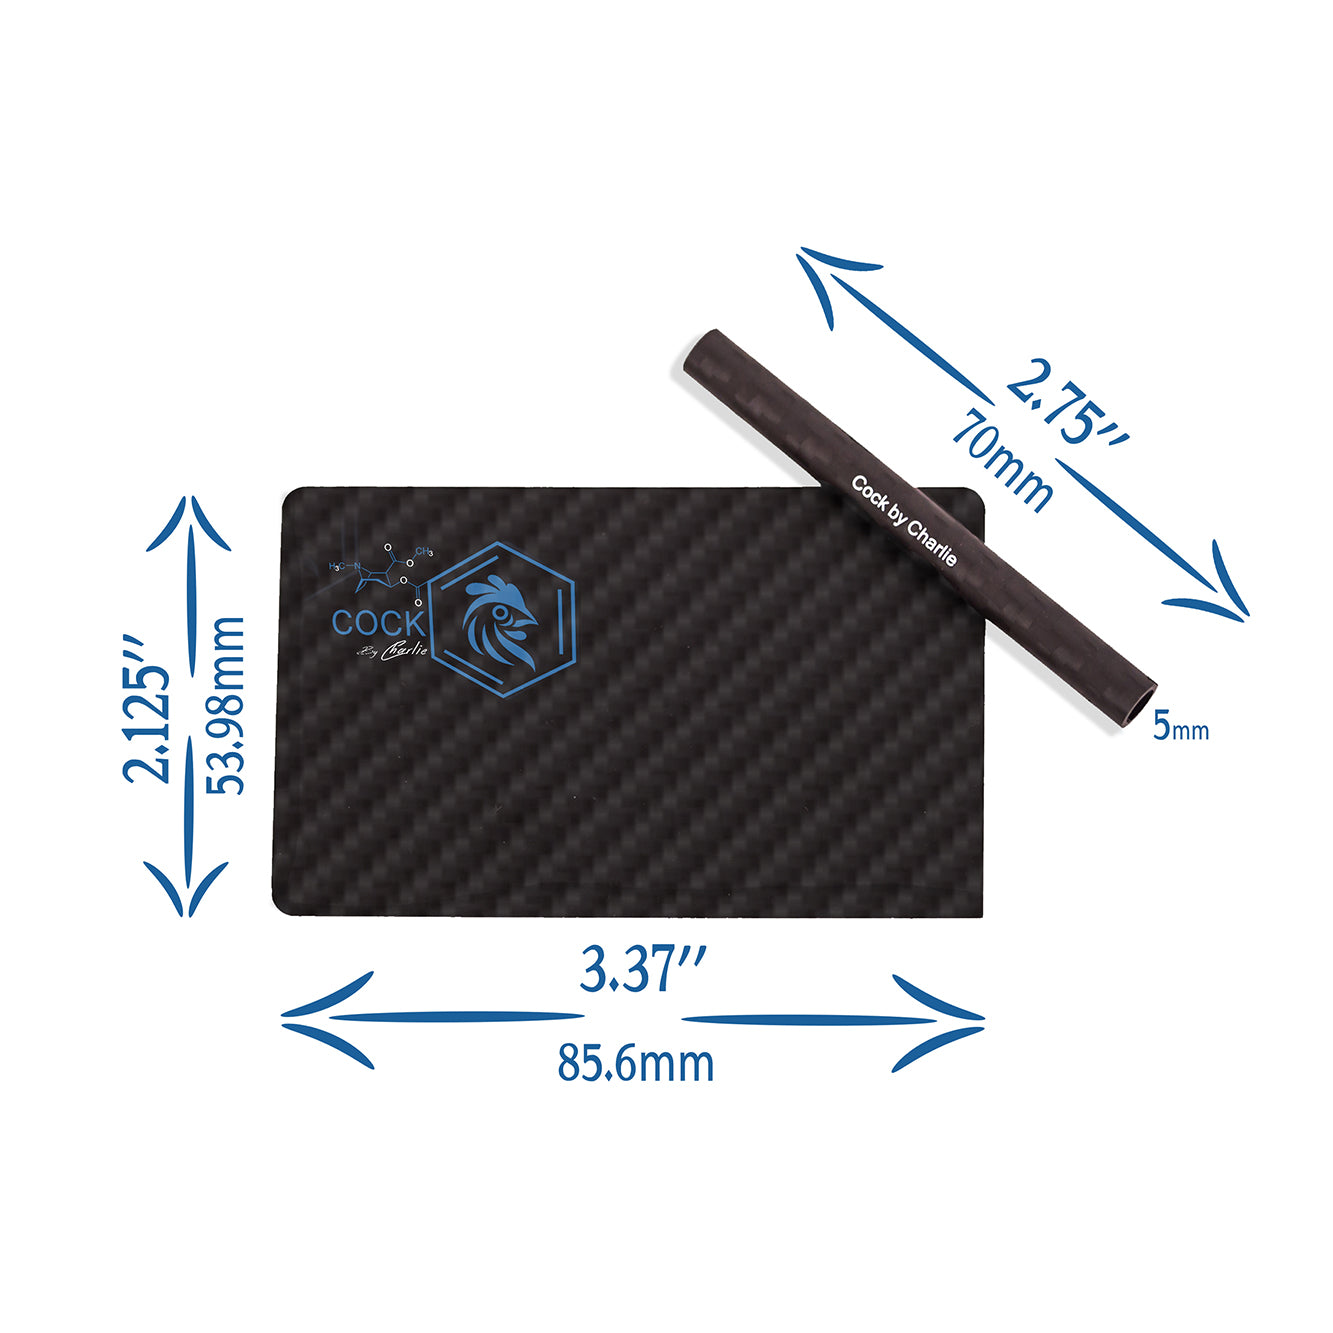 Carbon fiber cutting card and straw sizes